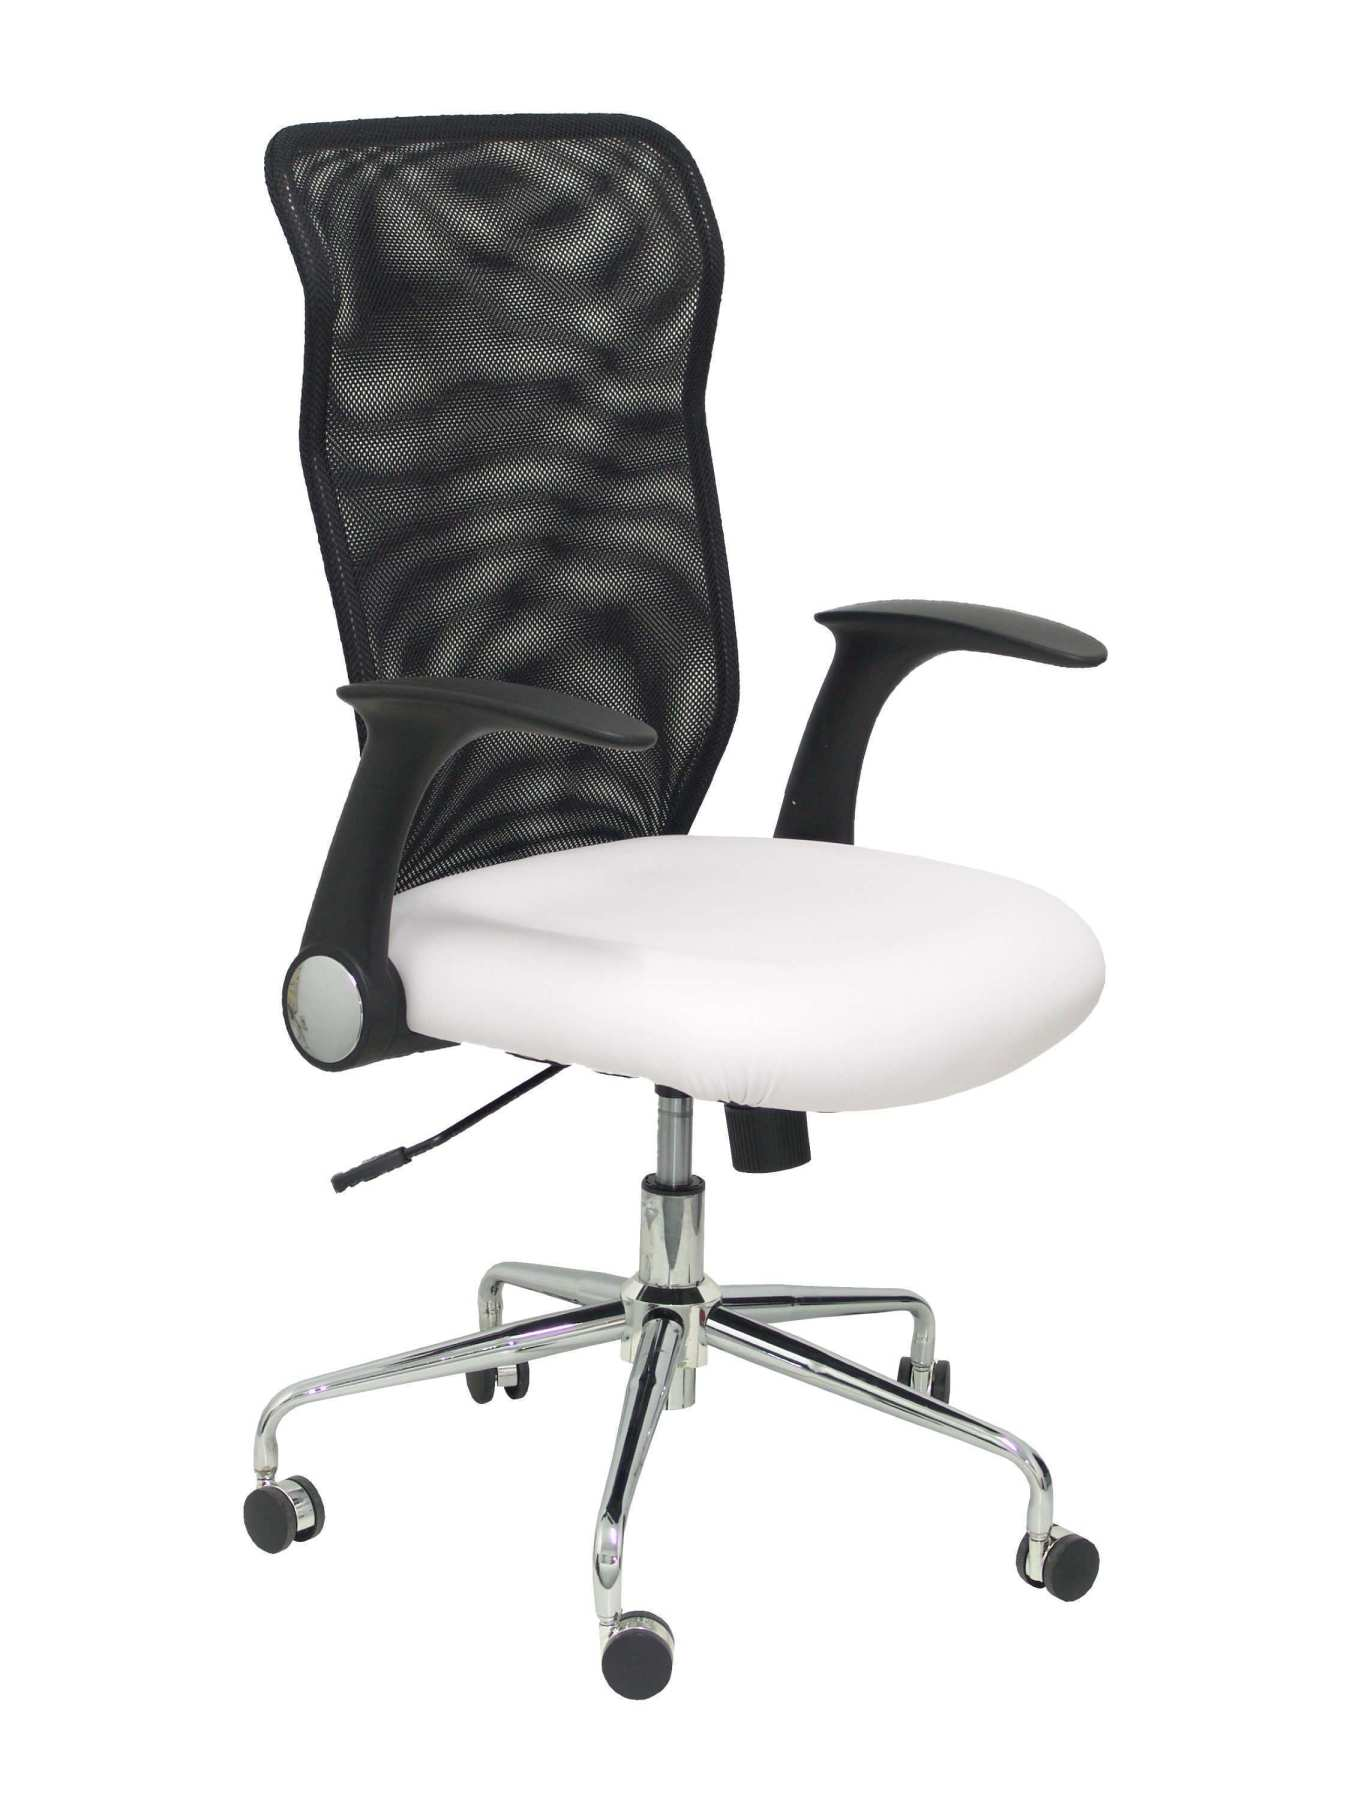 Ergonomic Office Chair With Mechanism Rocker, Arms Retractable And Adjustable Height-Backing Mesh Tra